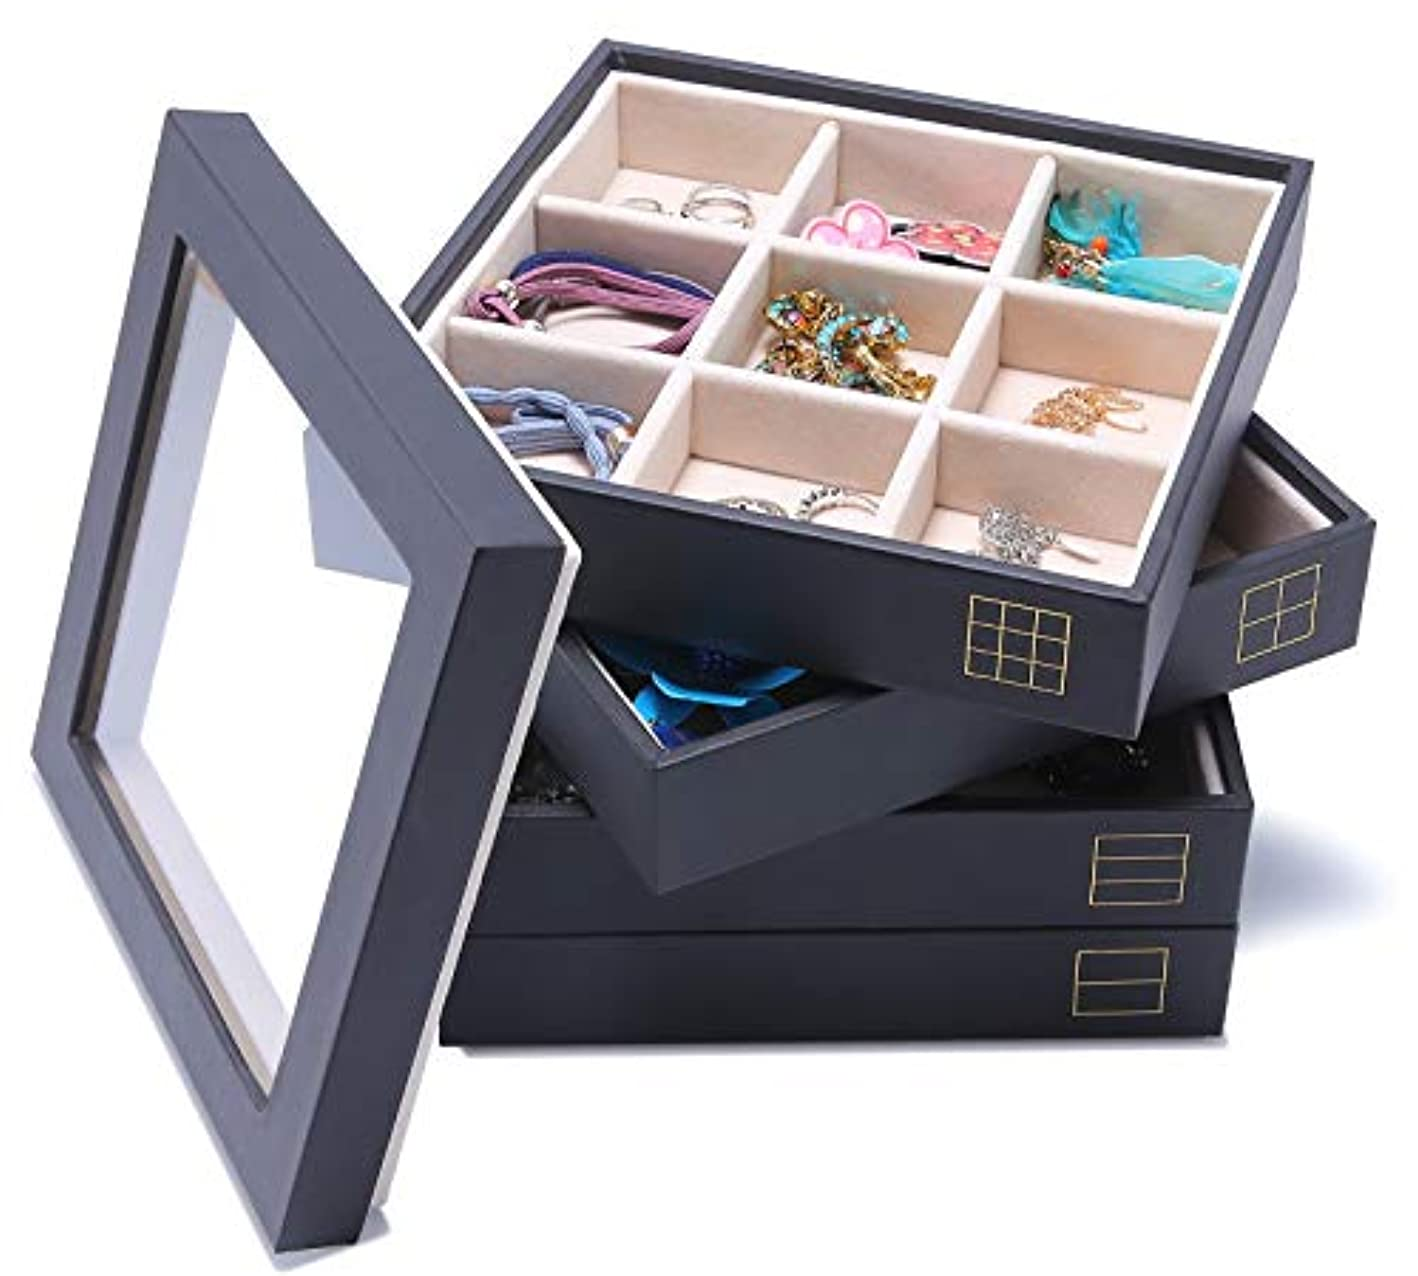 MUNLONG Stackable Jewelry Trays 4 with Lid Dresser Organizer Accessary Showcase Display Storage Drawer Insert